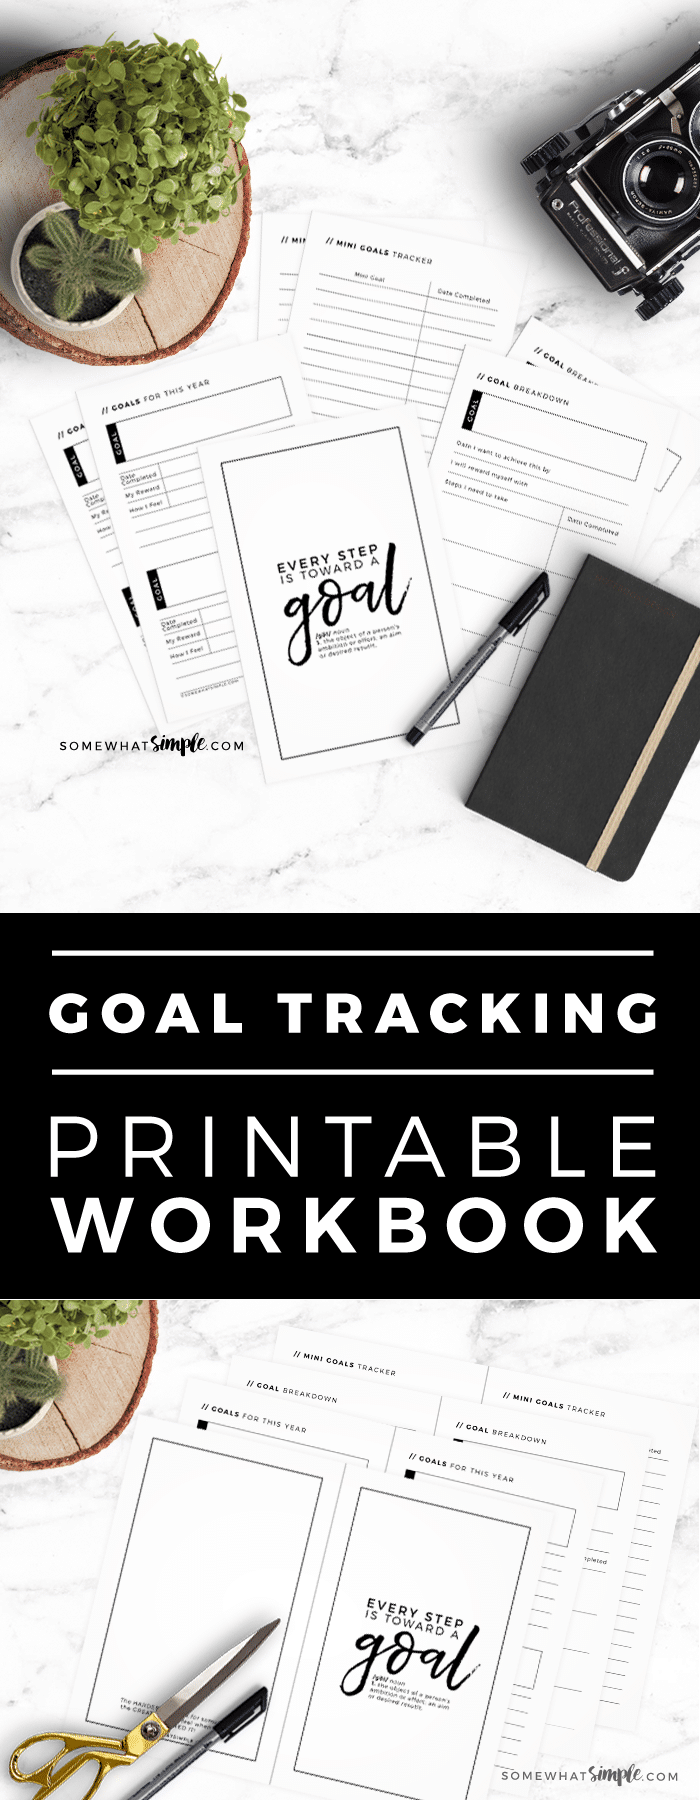 Looking for the perfect goal tracker?! Goal setting can be tricky, so we've created this beautiful and simplePrintable Goal Journal to help you make (and keep!) those New Year's Resolutions! via @somewhatsimple